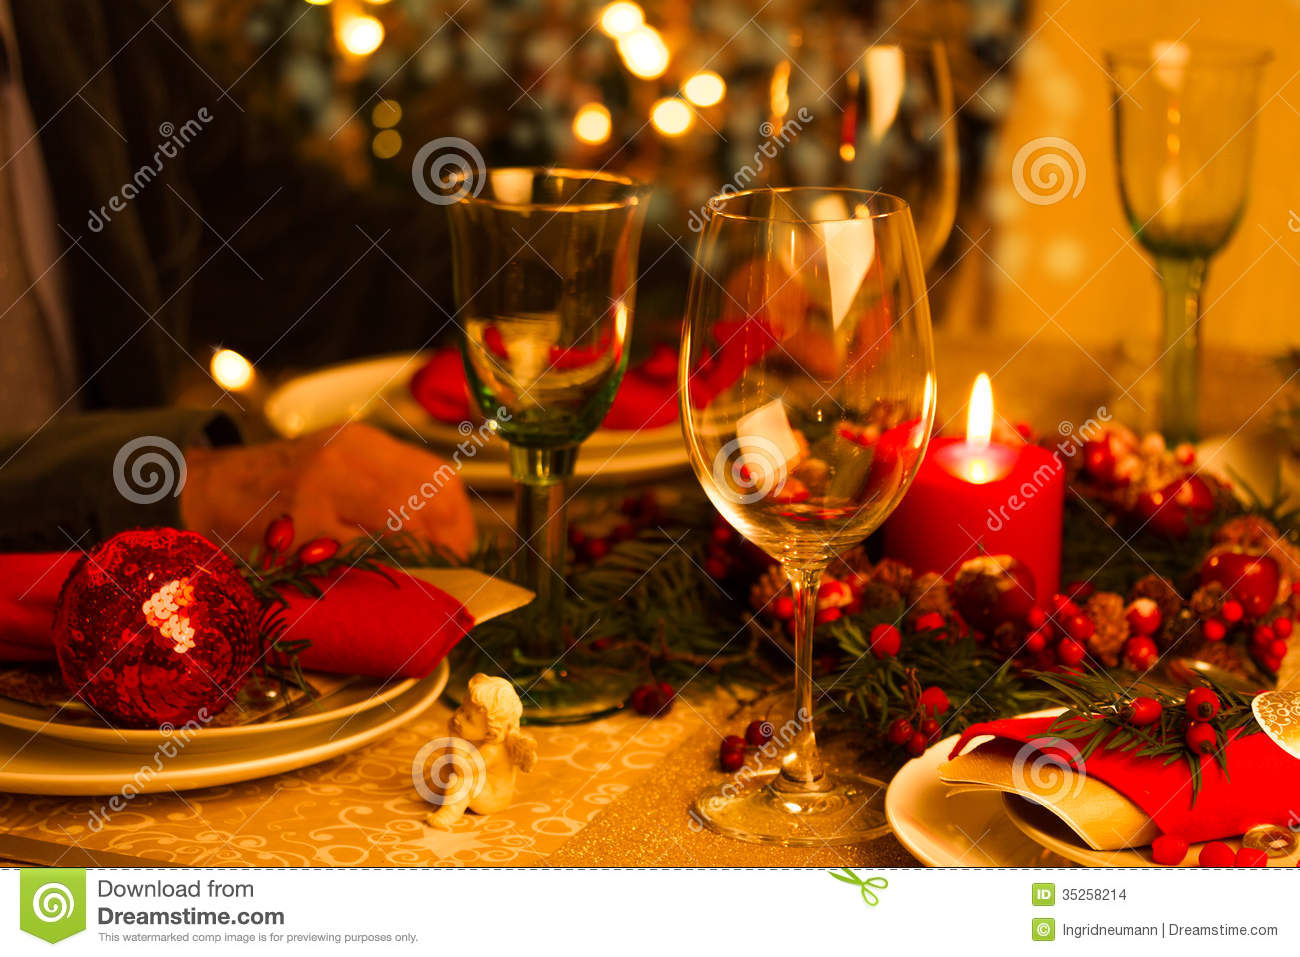 Christmas table decorations red and gold - Christmas Table Setting With Holiday Decorations Stock Images